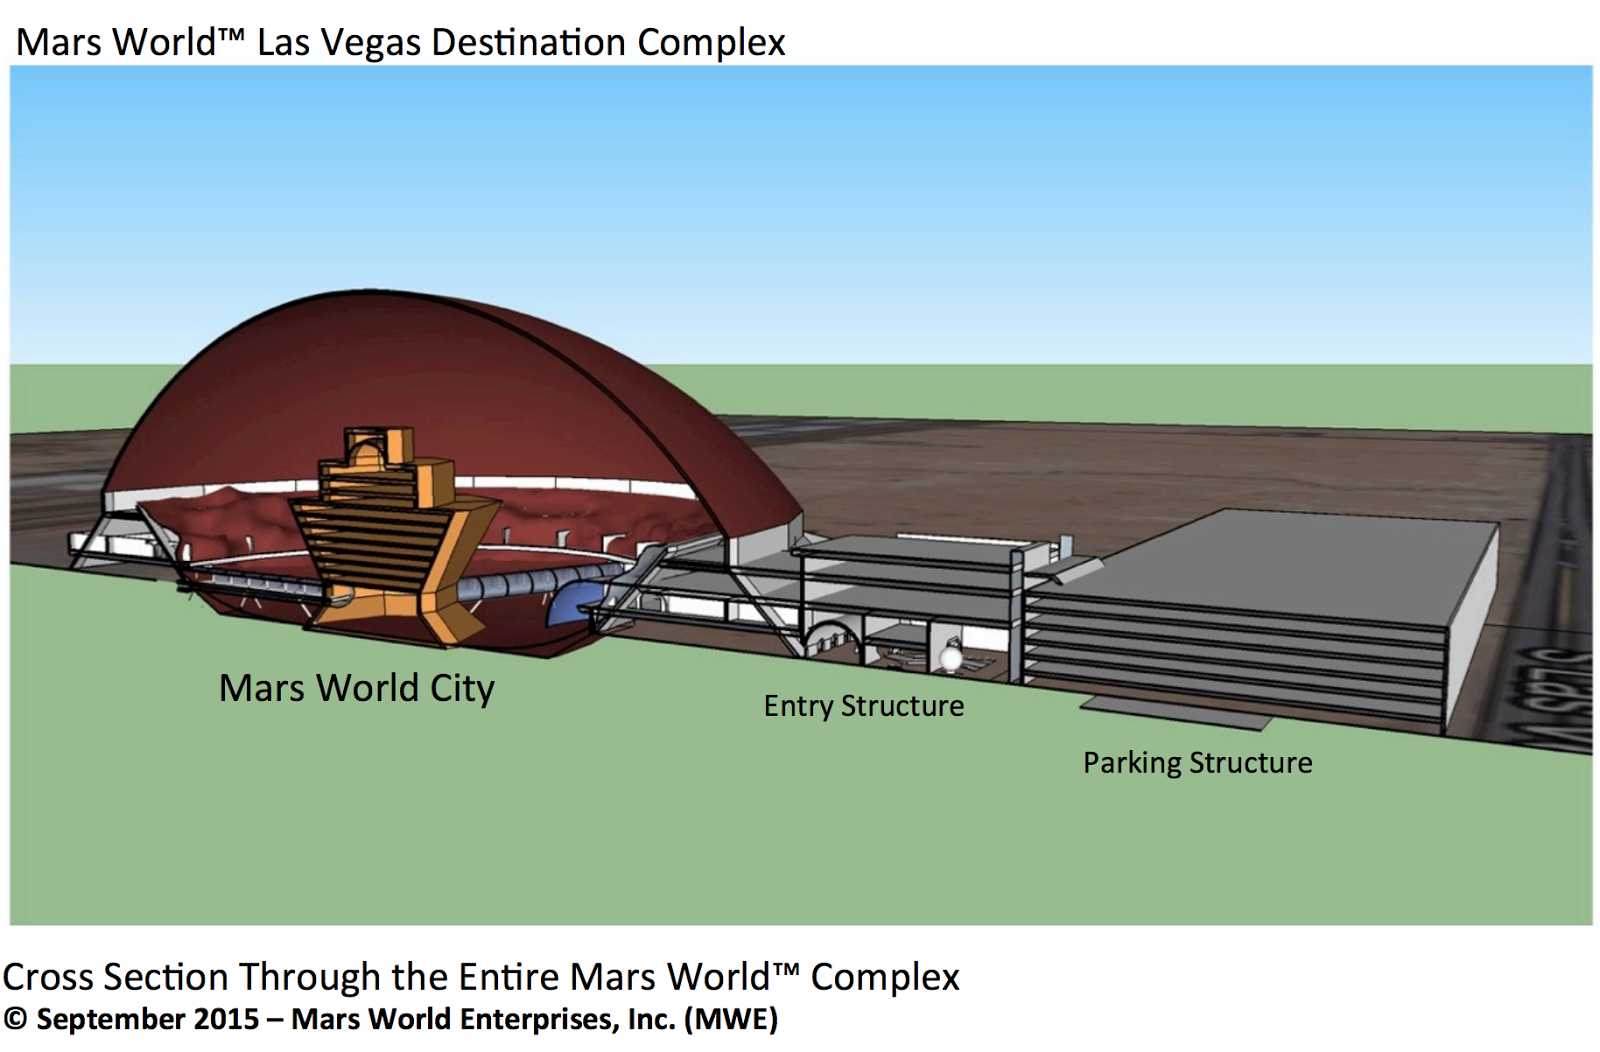 Las Vegas Mars World schematics